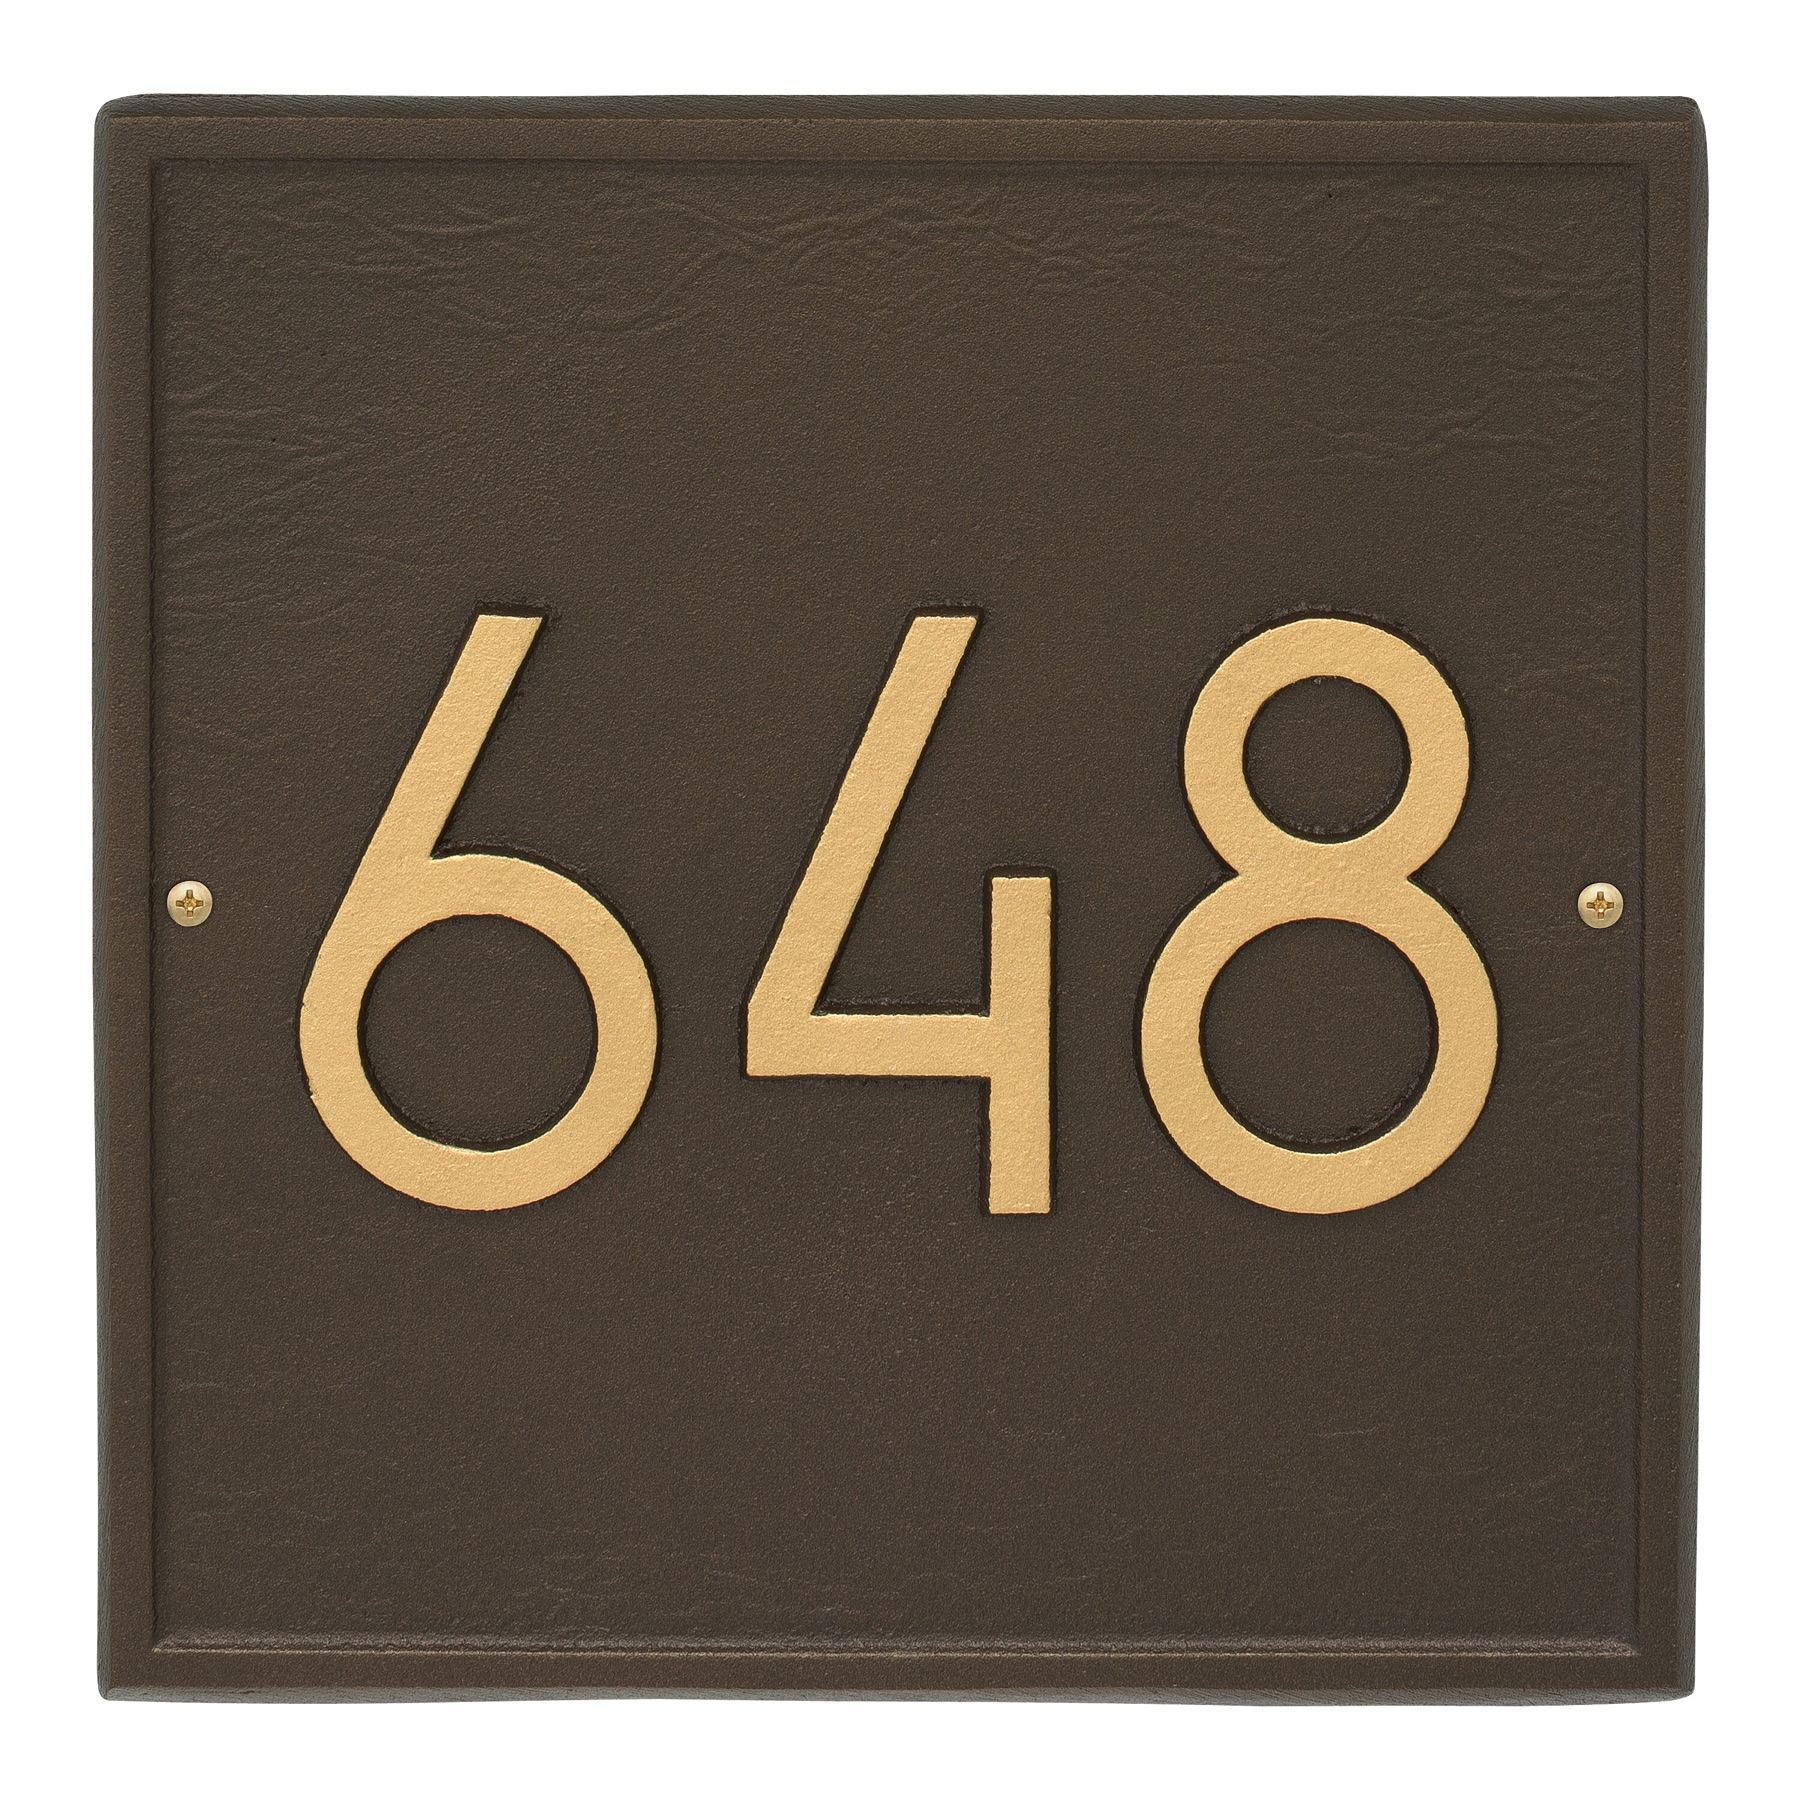 nautical kitchen hardware prefabricated cabinets square modern address plaque wall